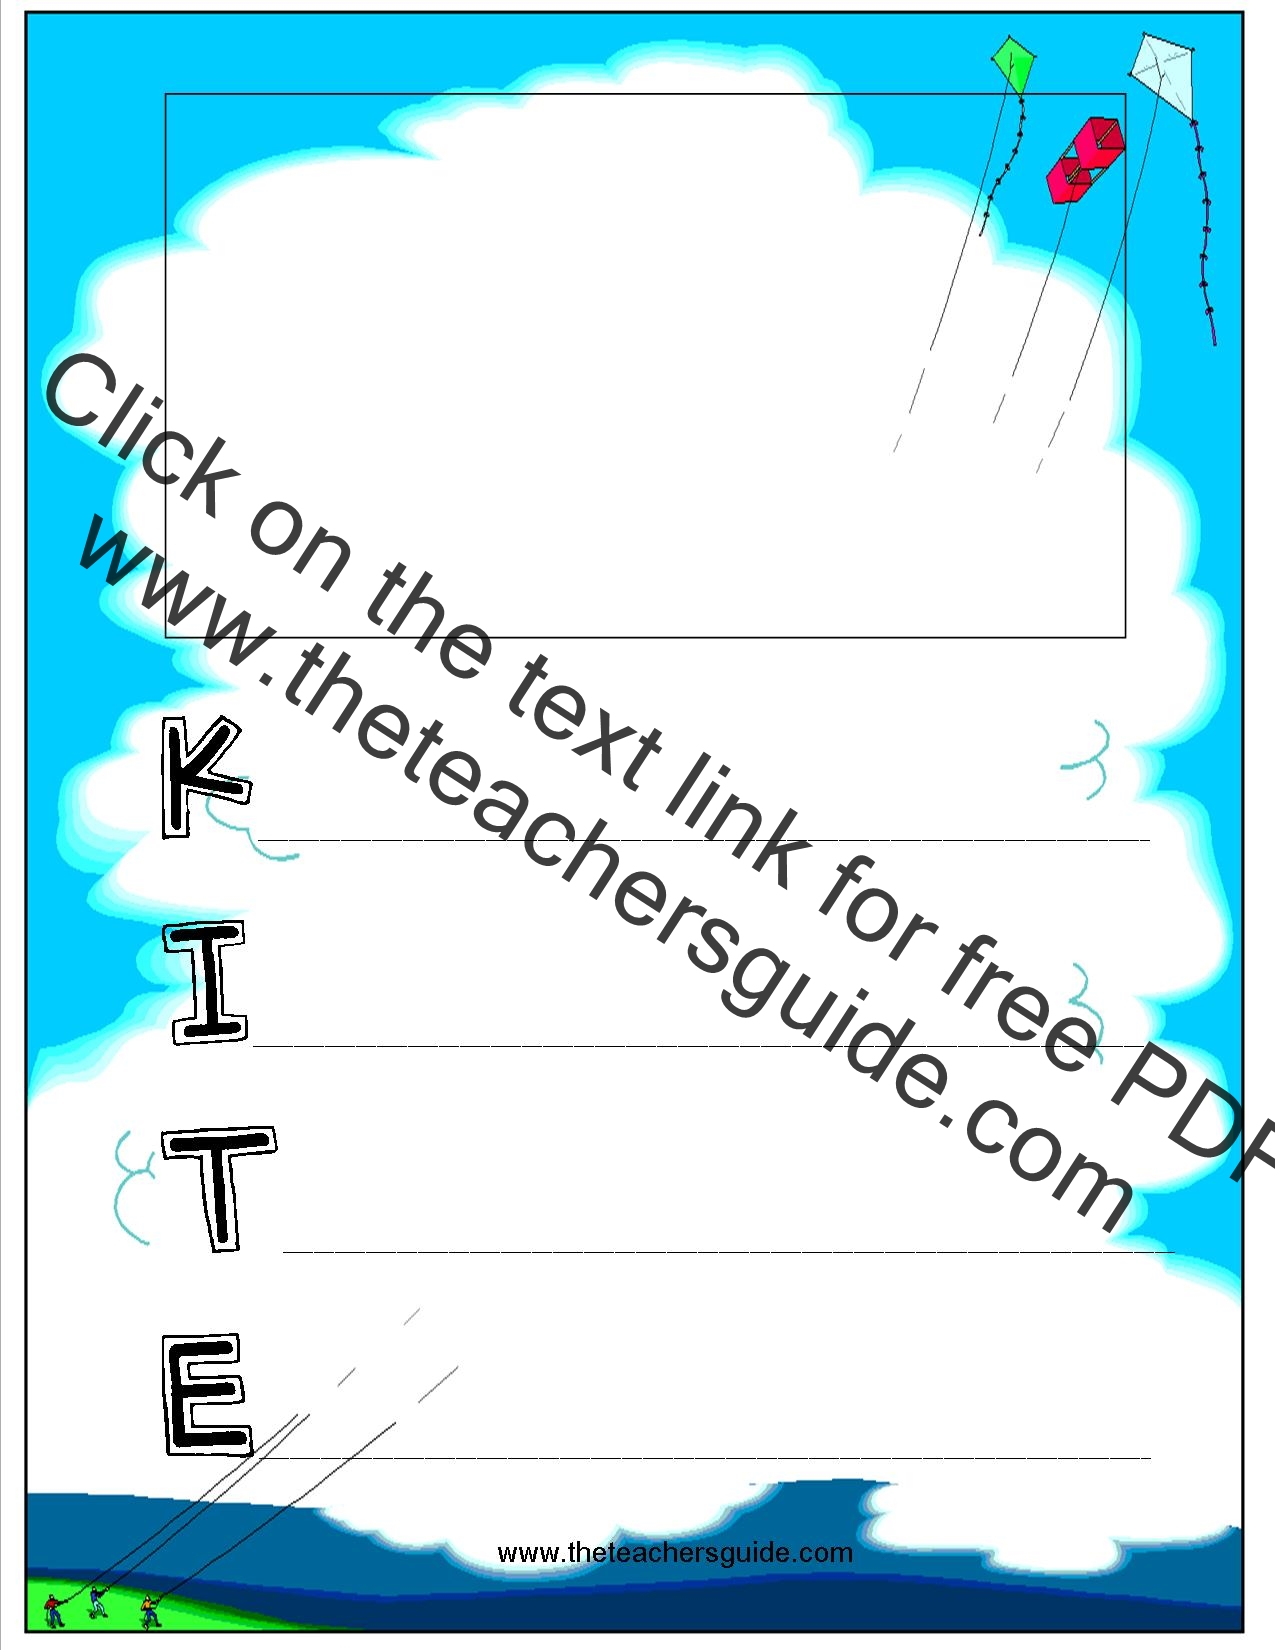 Acrostic Poems Worksheets from The Teacher's Guide